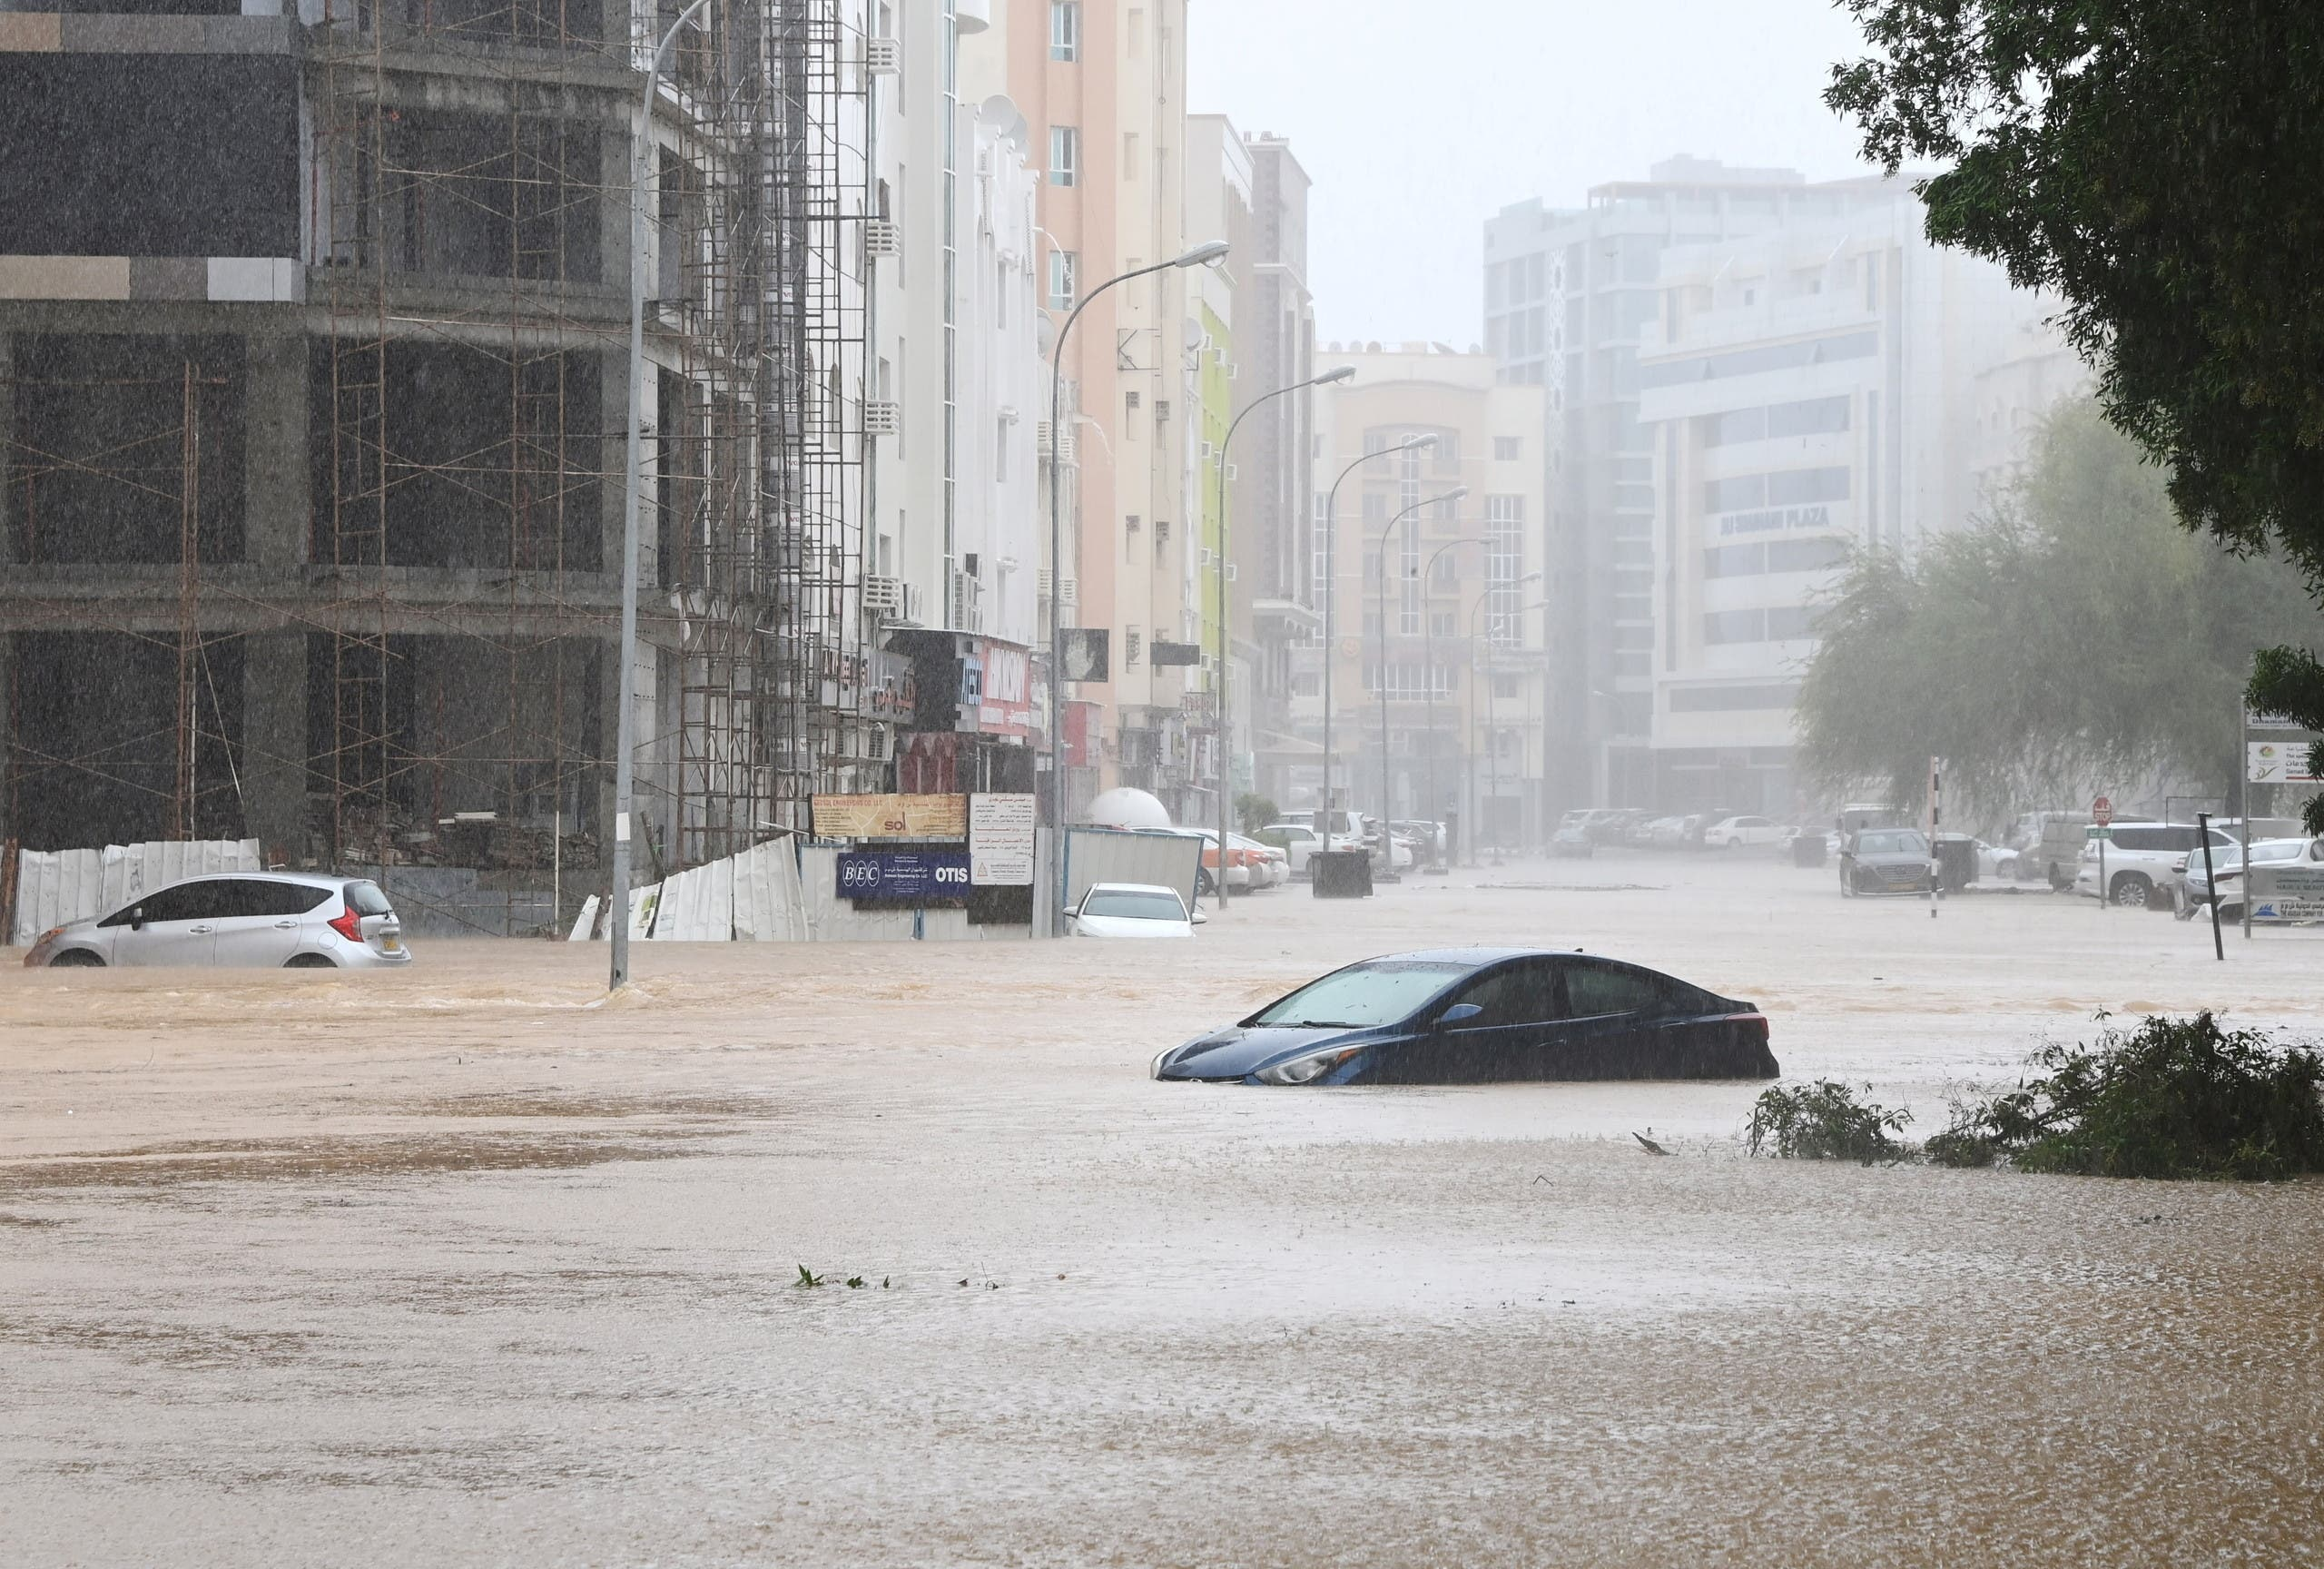 Flooded streets are seen as Cyclone Shaheen makes landfall in Muscat Oman, October 3, 2021. (Reuters)